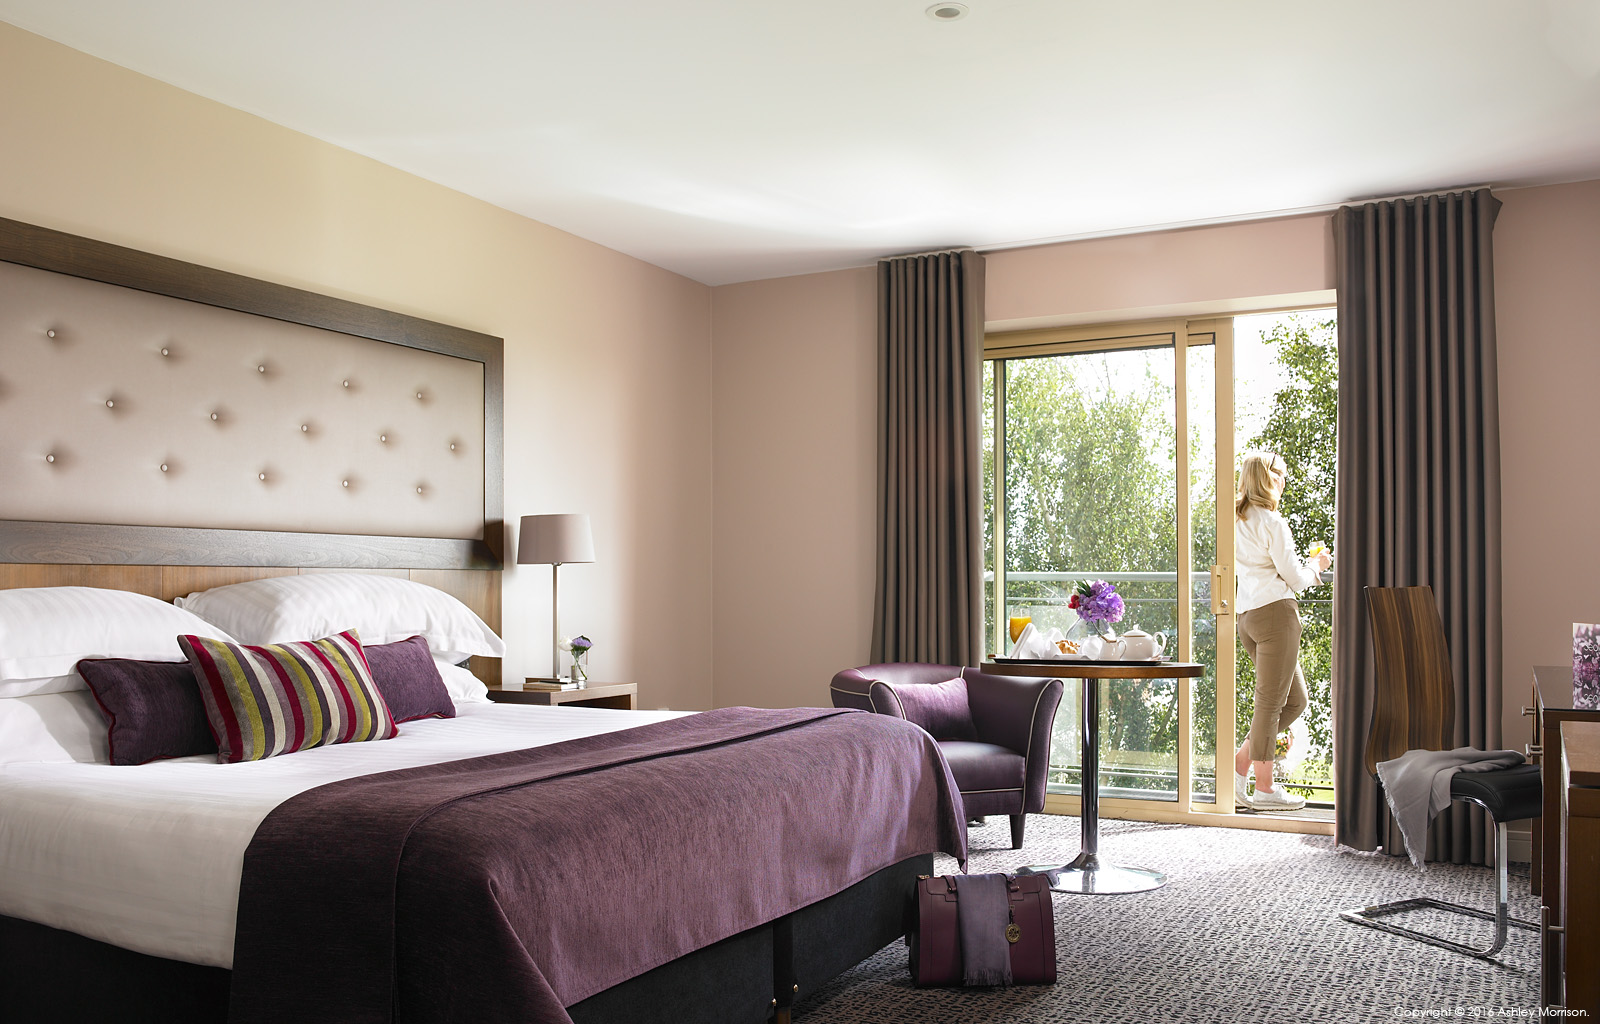 Deluxe bedroom with a balcony at Dunboyne Castle Hotel & Spa in County Meath.